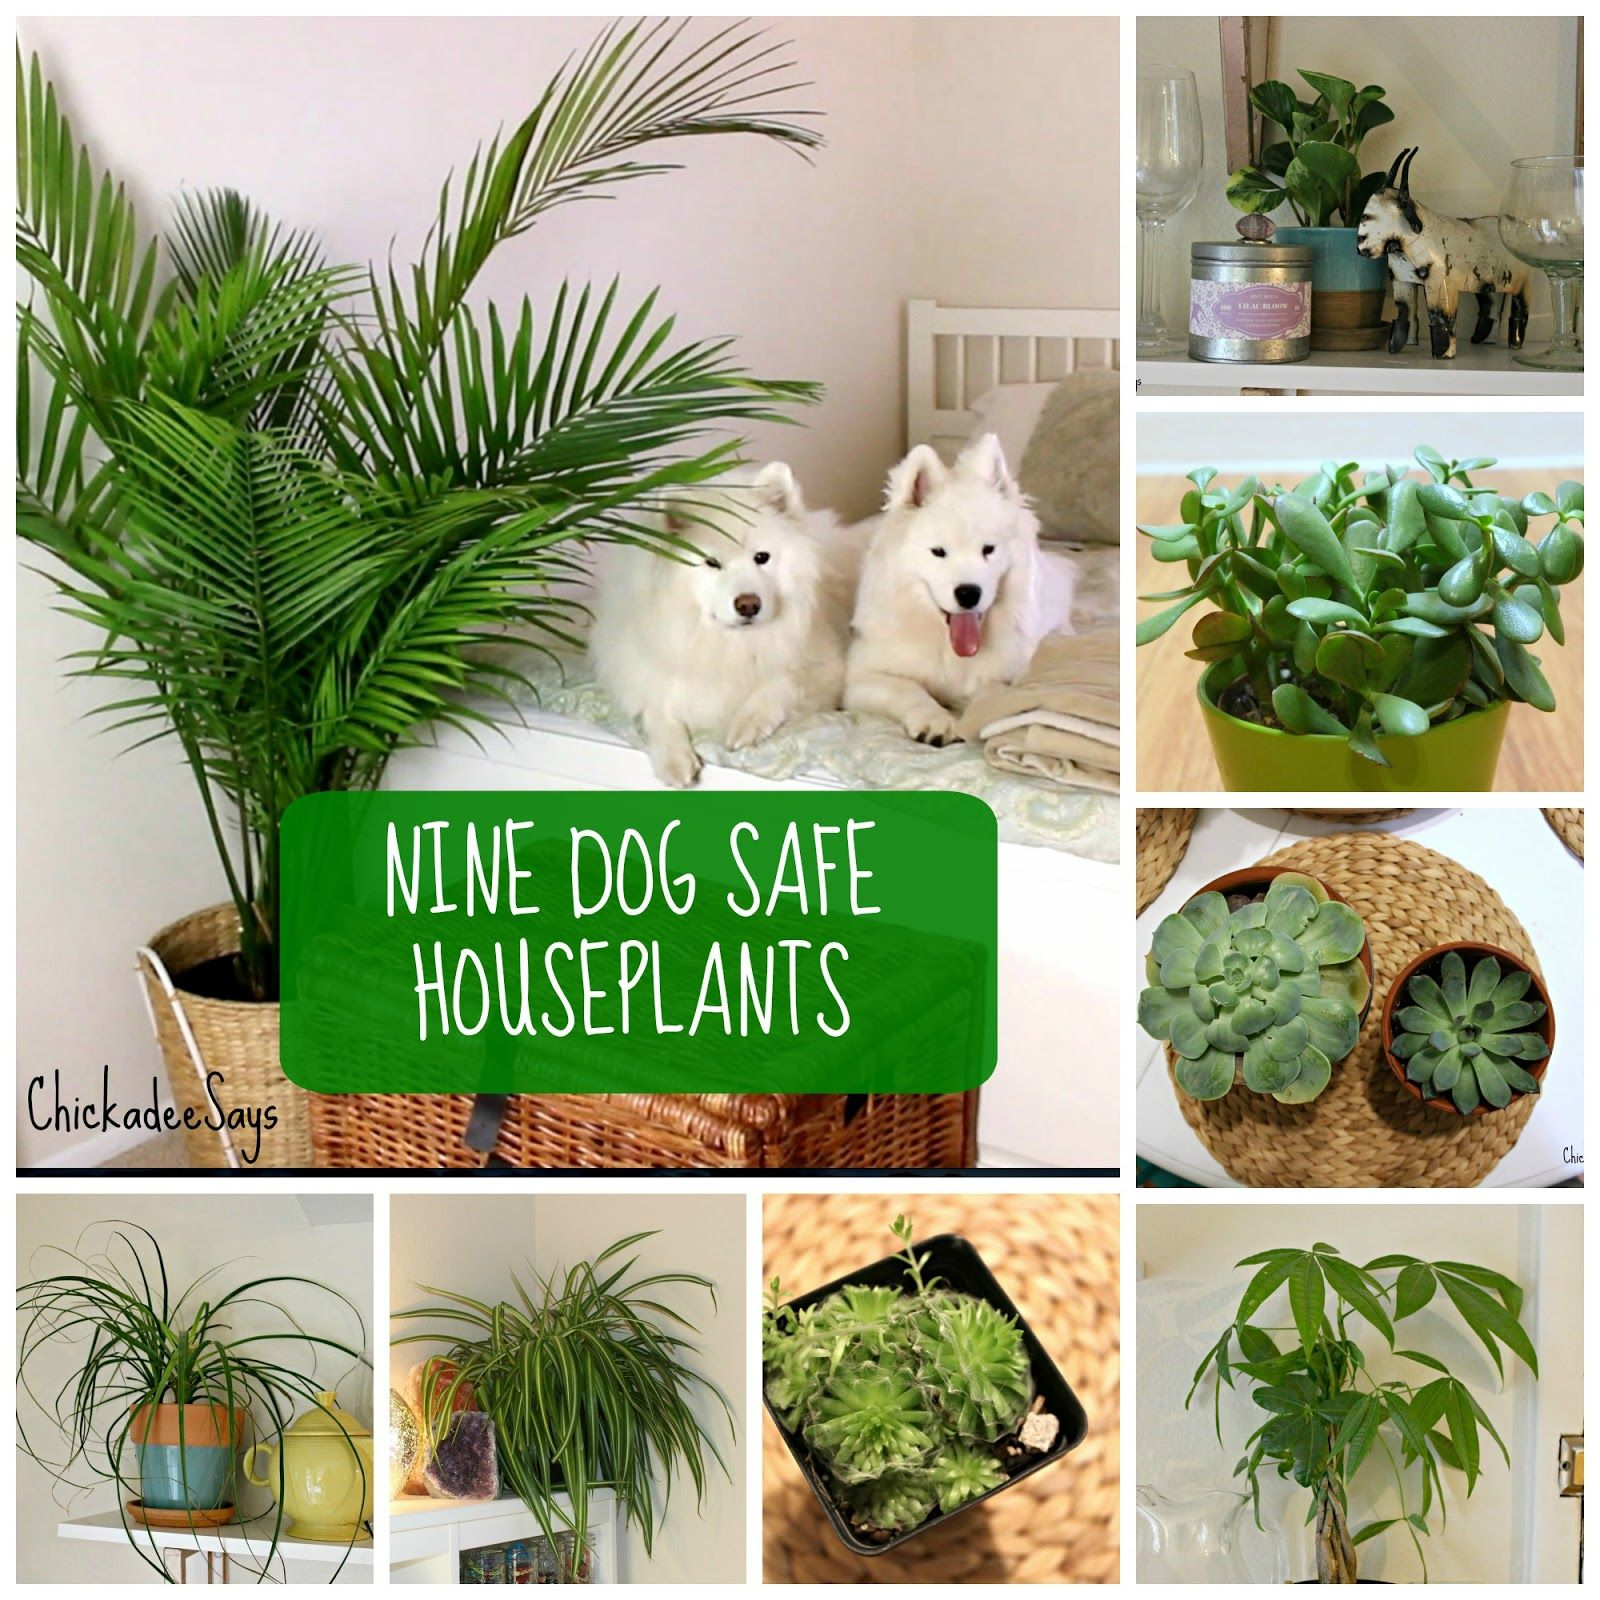 Design Plants Safe For Dogs the top 5 trainable dog breeds houseplants plants and decorating chickadee says 9 safe for a stylish home